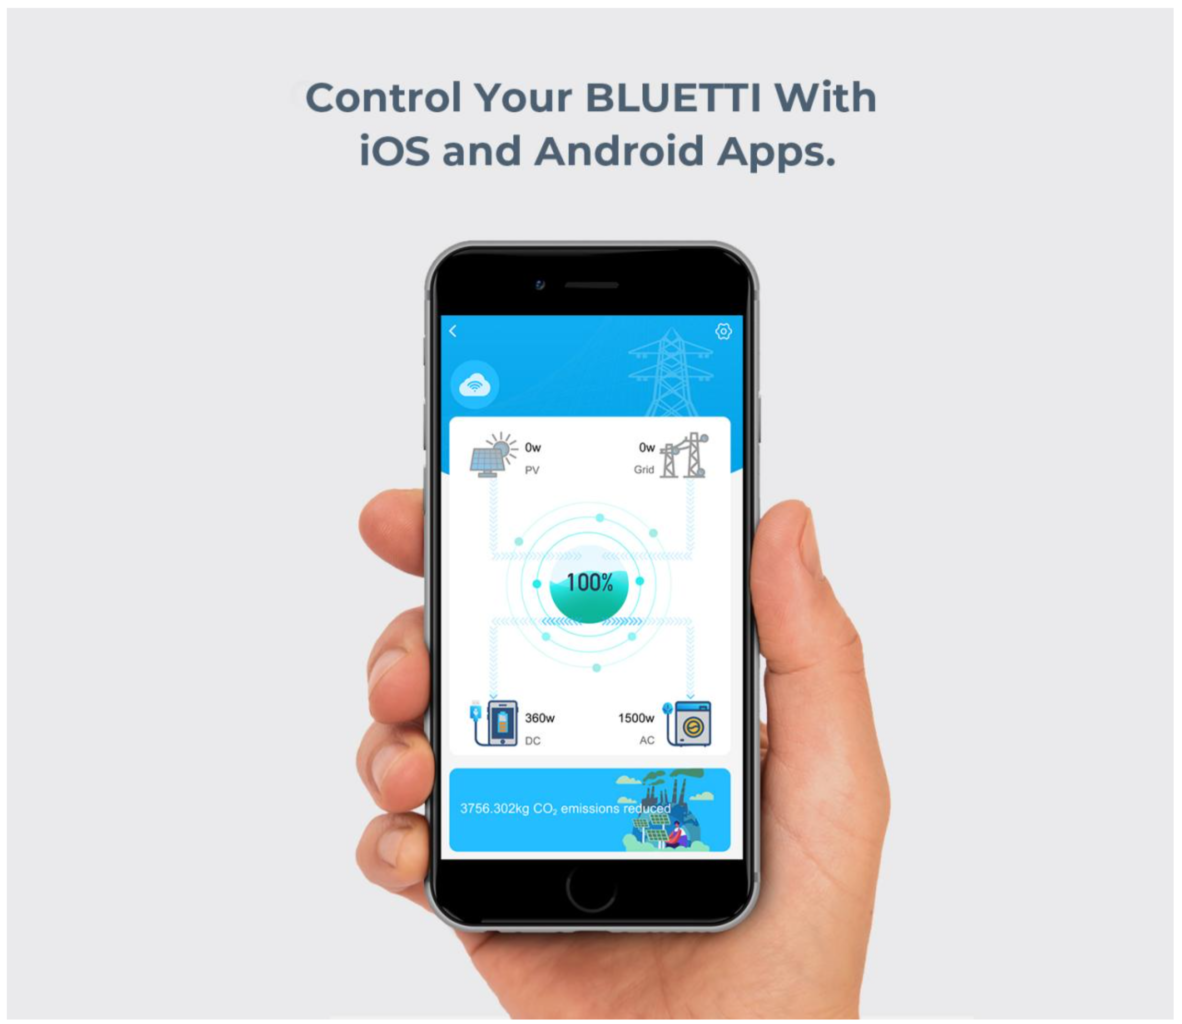 BLUETTI smartphone app for iOS and Android